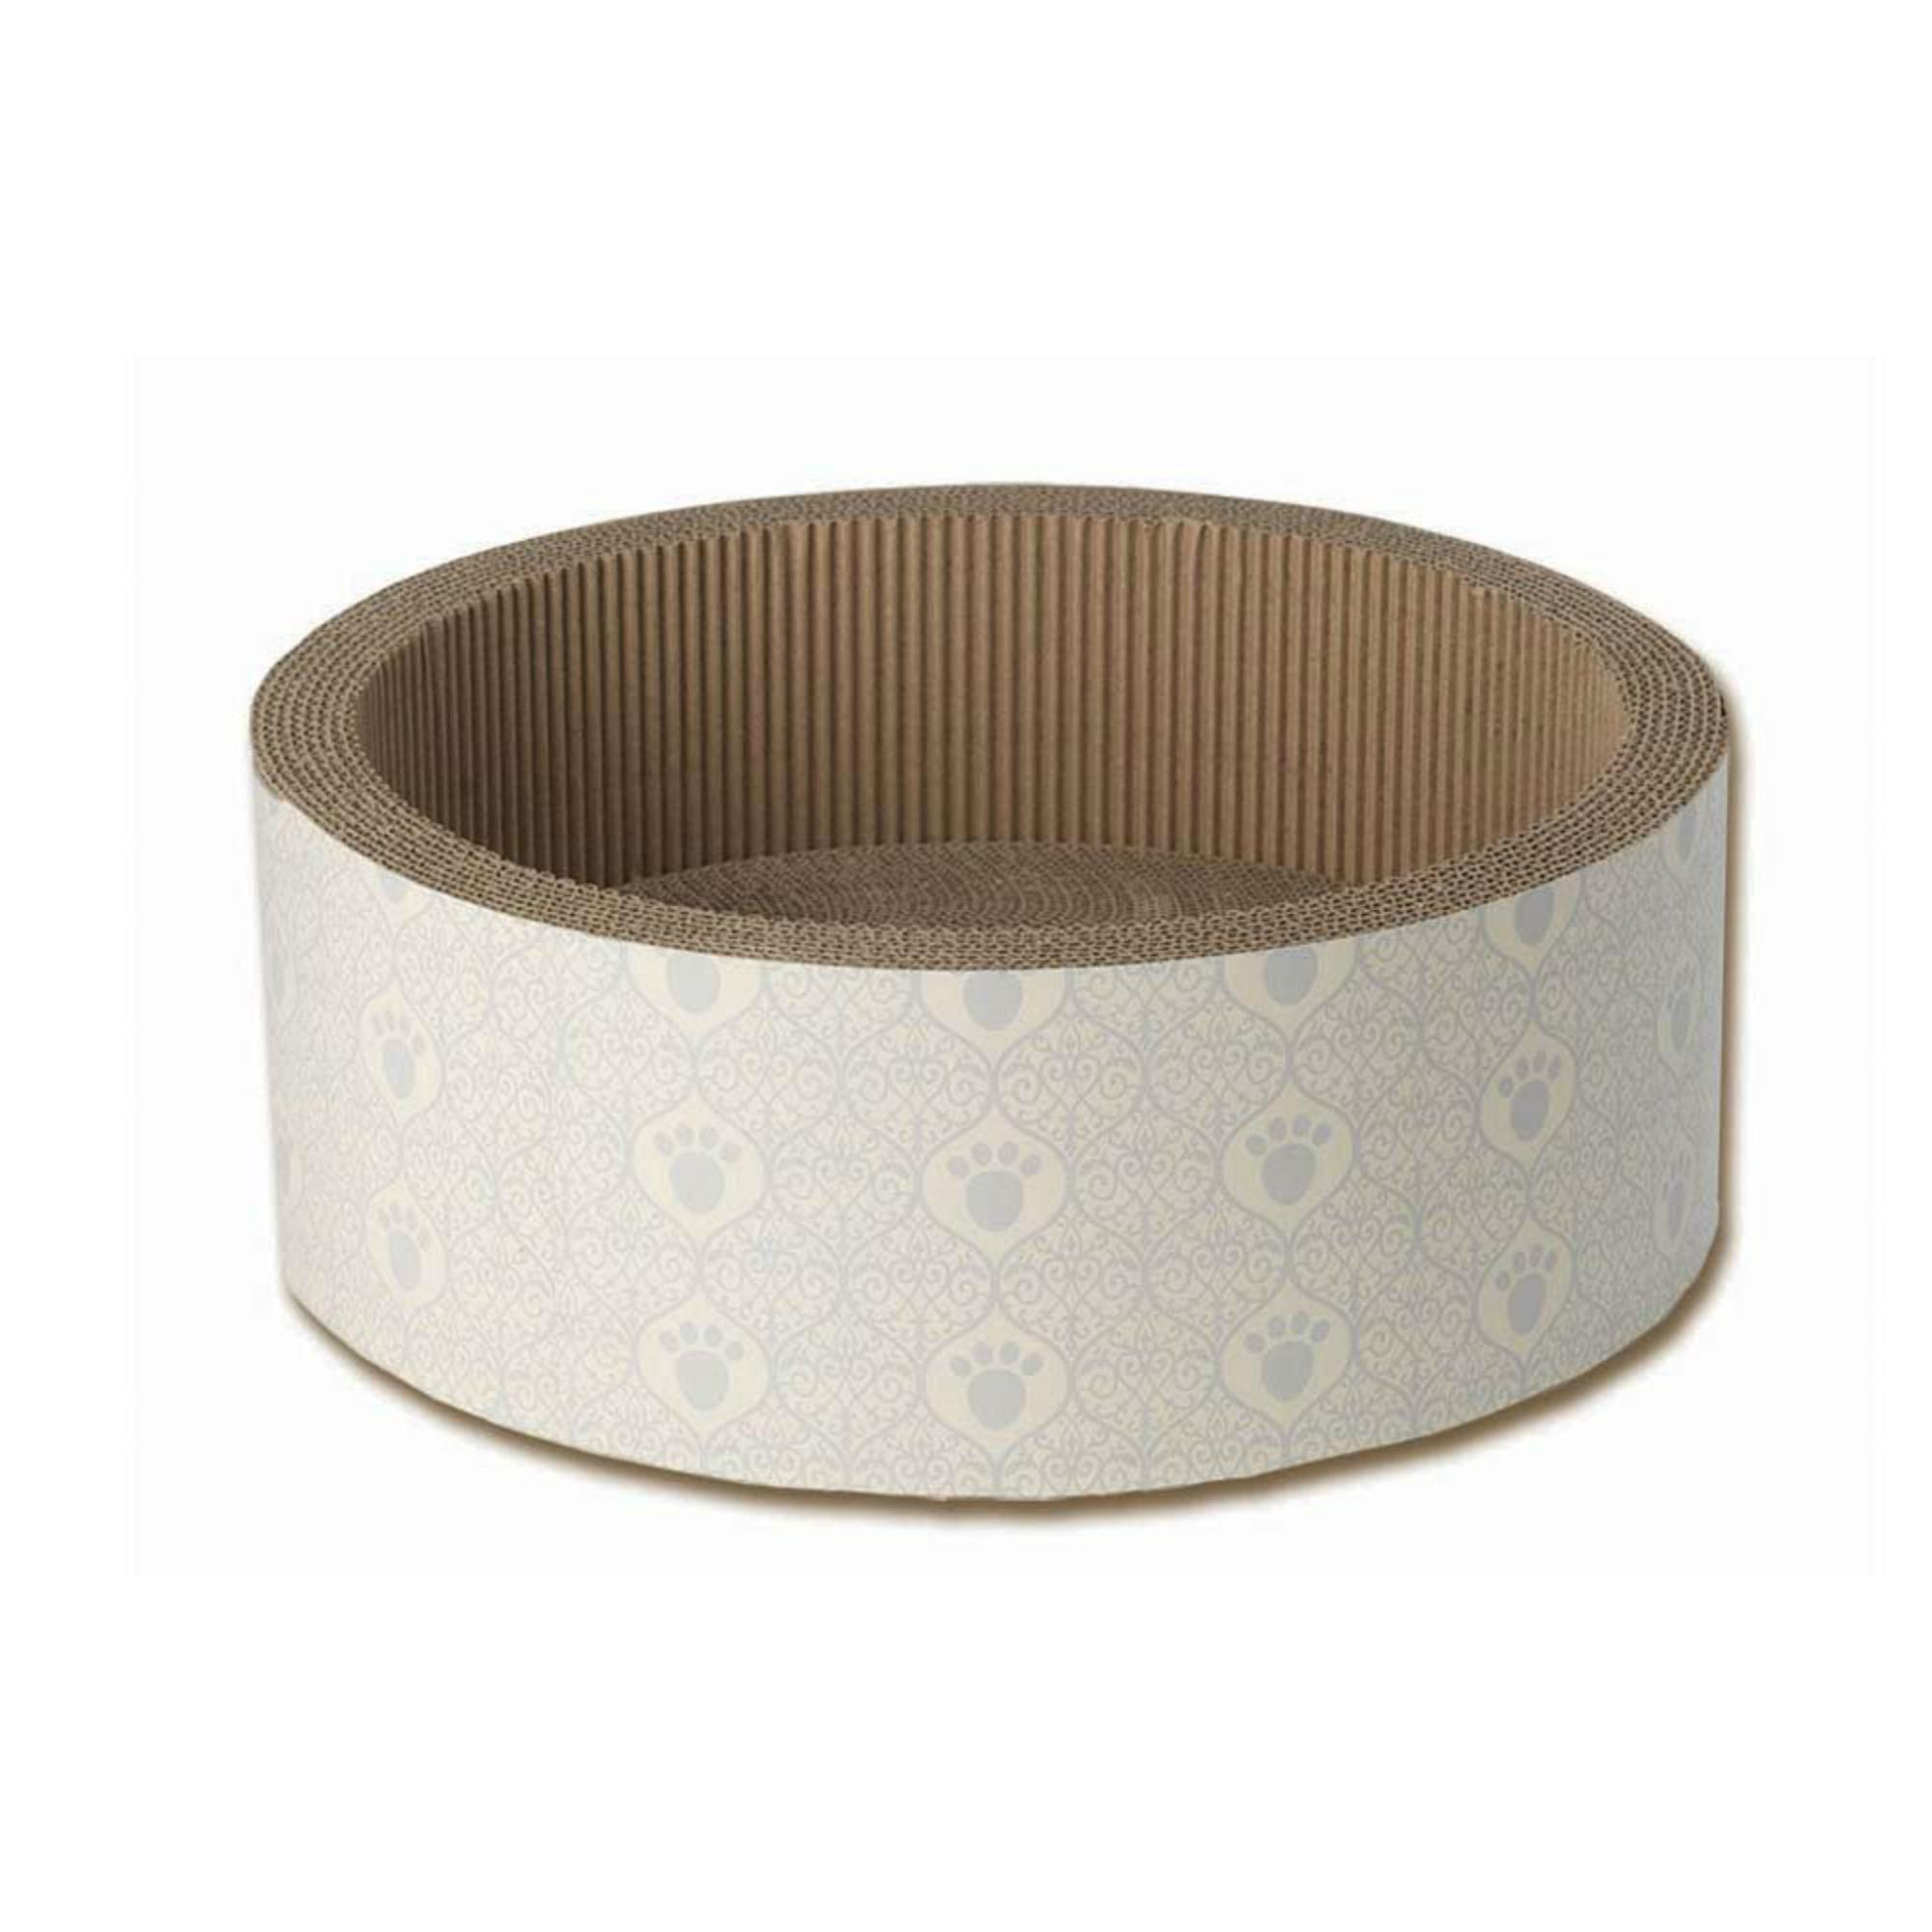 Boot's Cat Scratcher - Taupe/Gray Paw